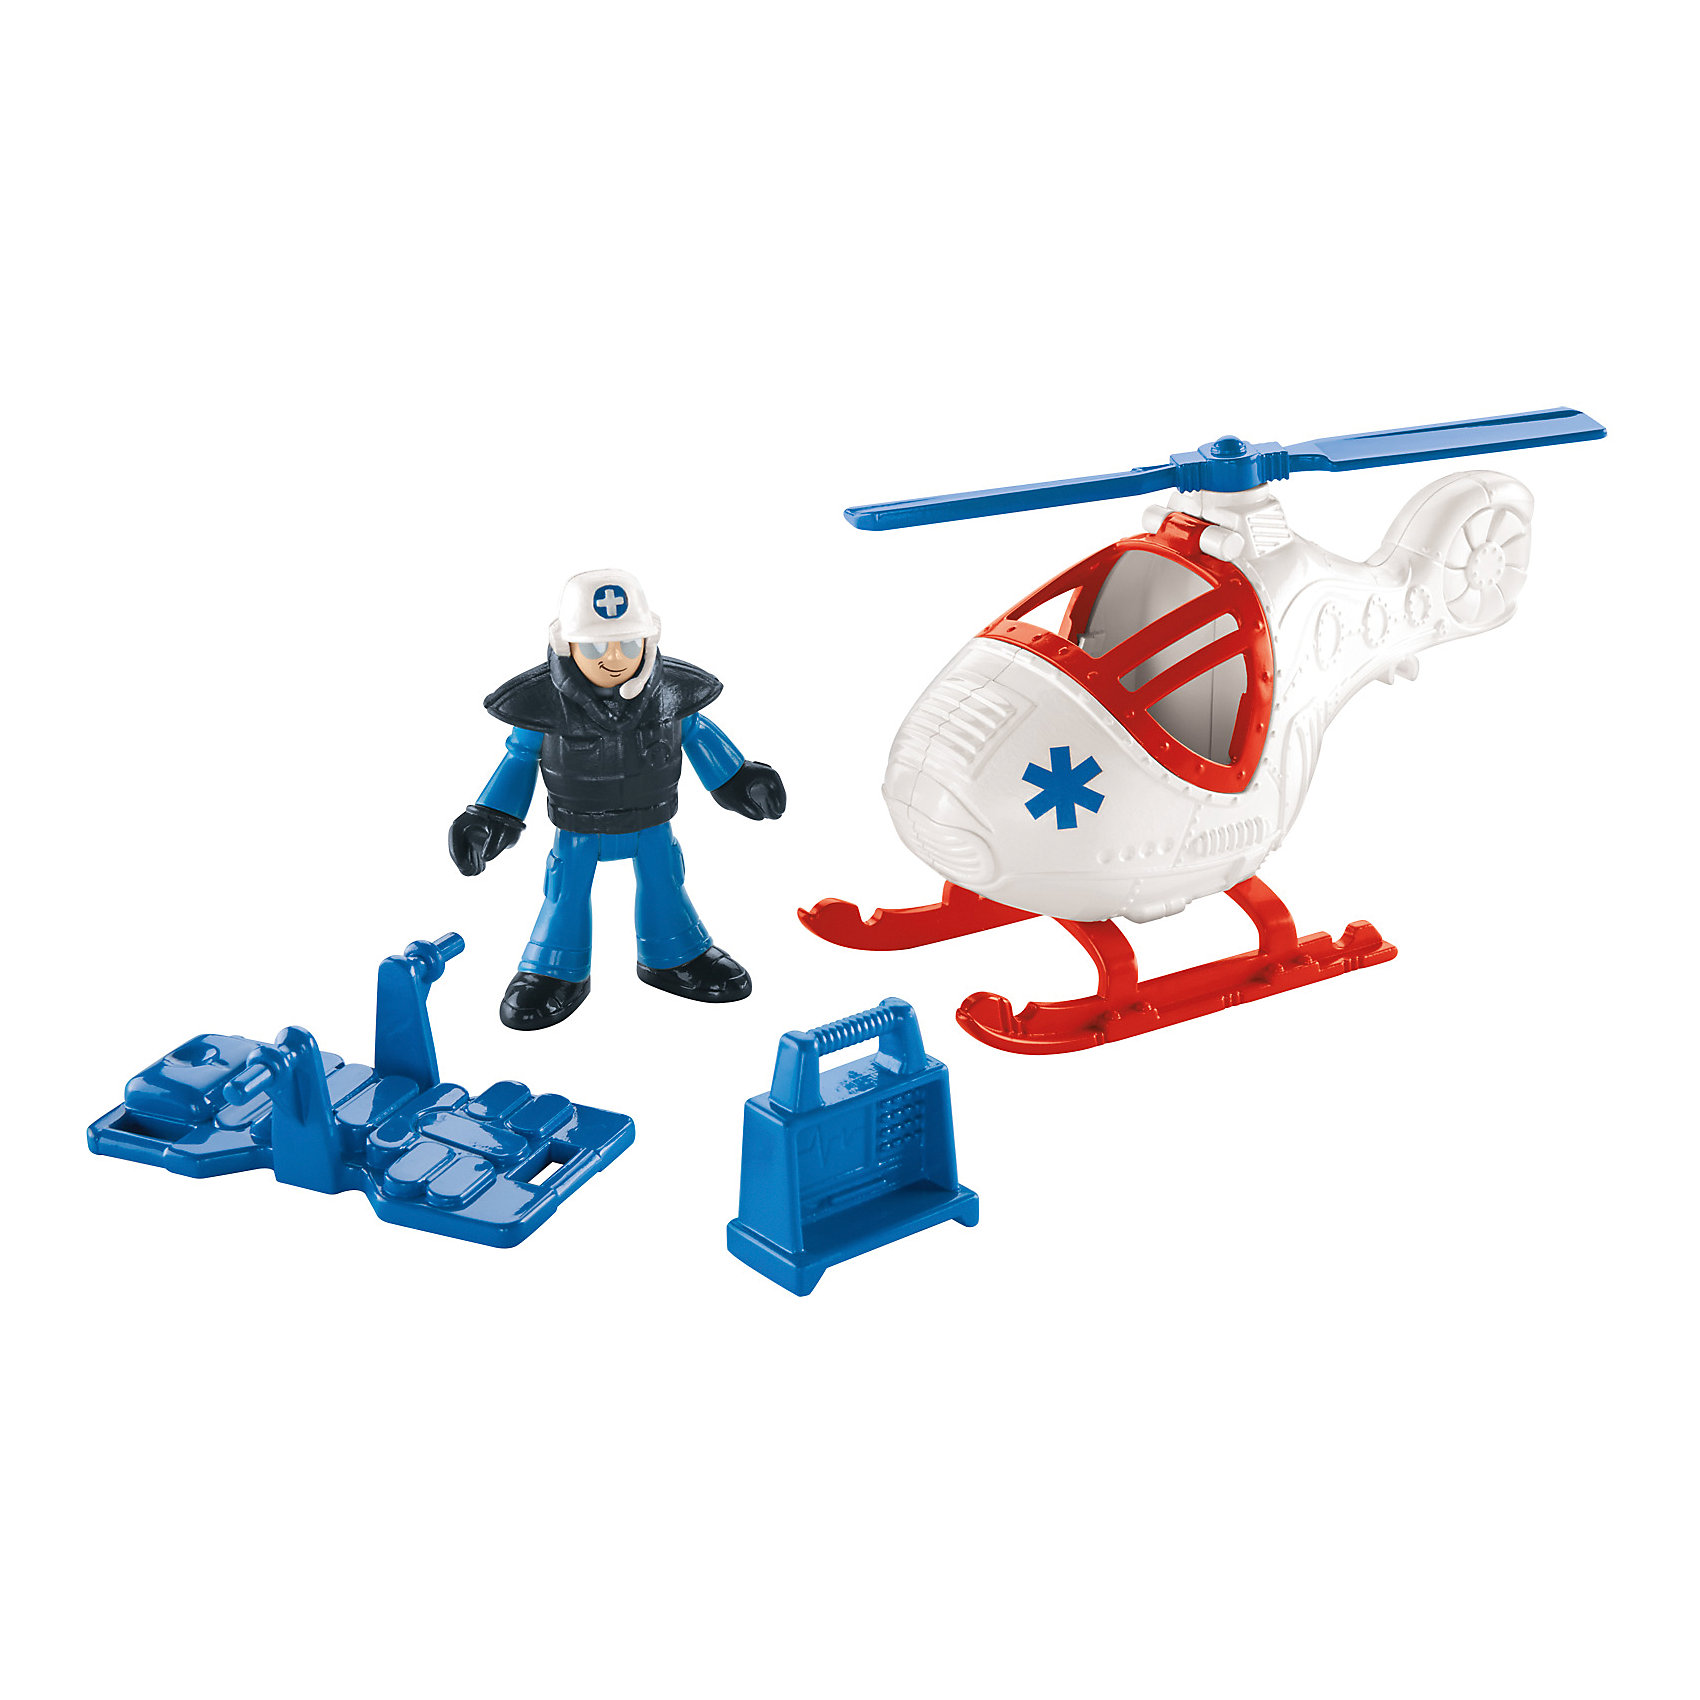 Mattel Базовый игровой набор Городские спасатели, Imaginext, Fisher Price theodore gilliland fisher investments on utilities